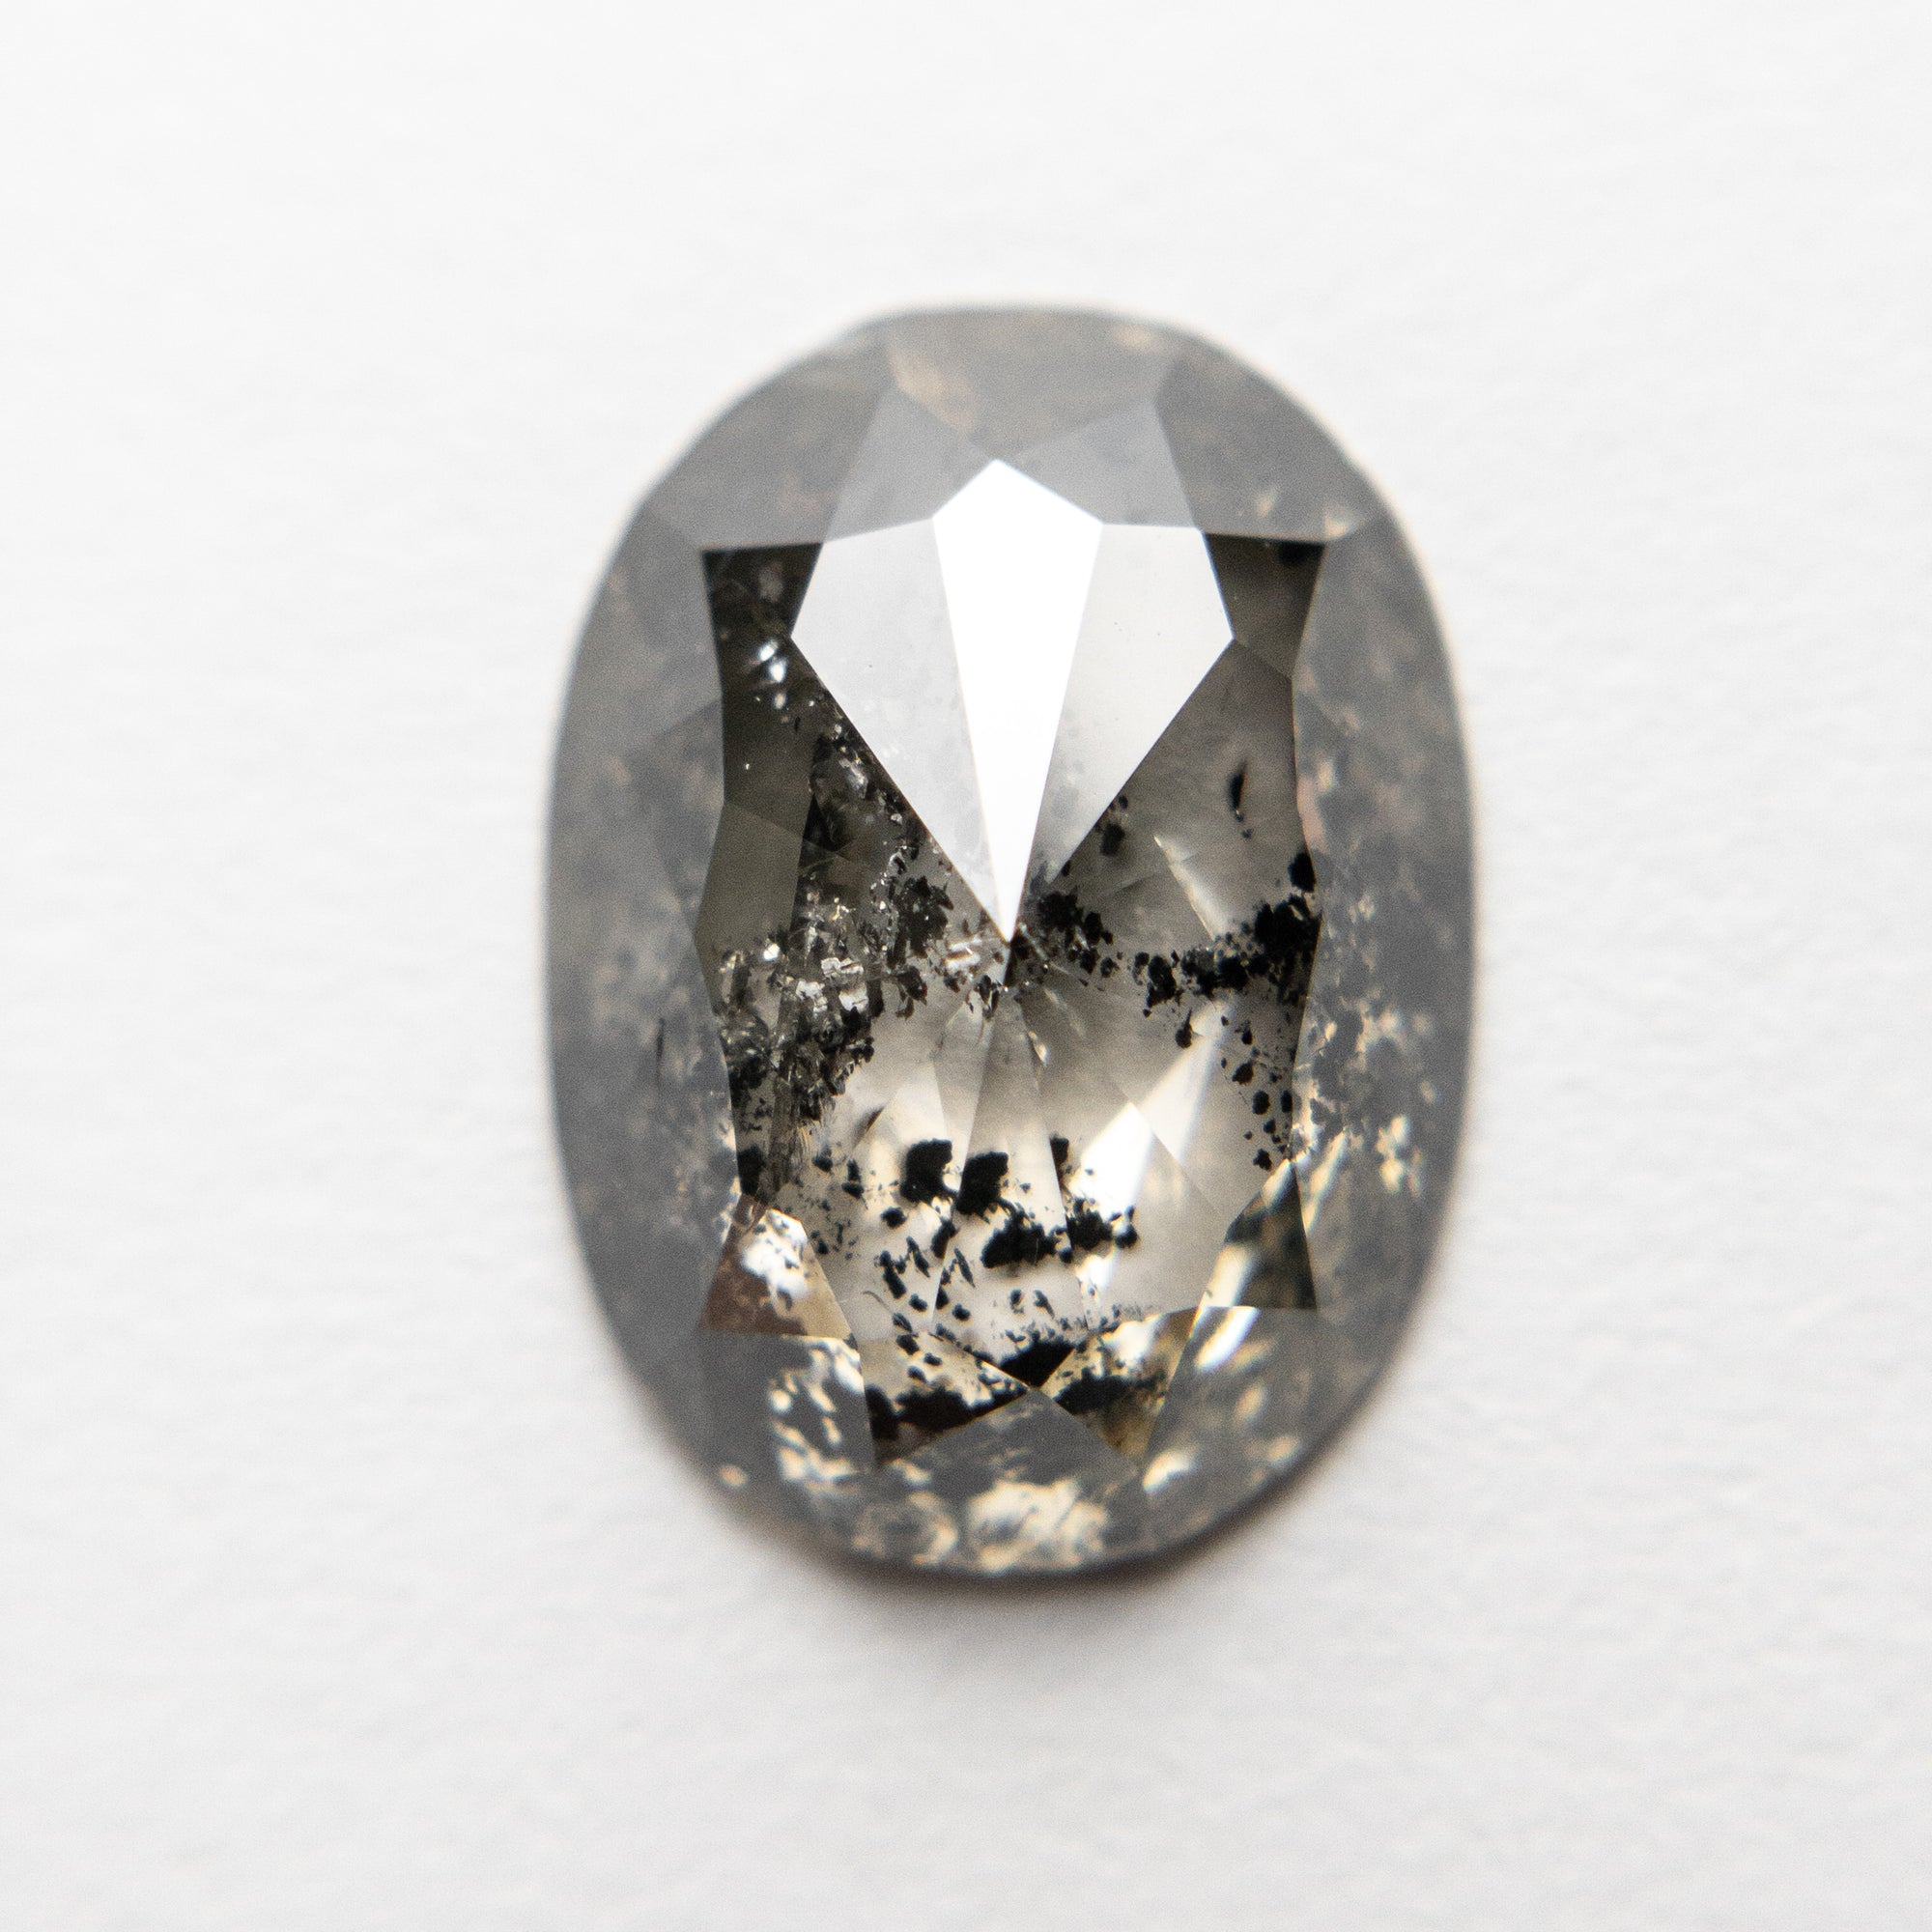 3.40ct 12.49x9.20x3.91mm Oval Rosecut 18419-02